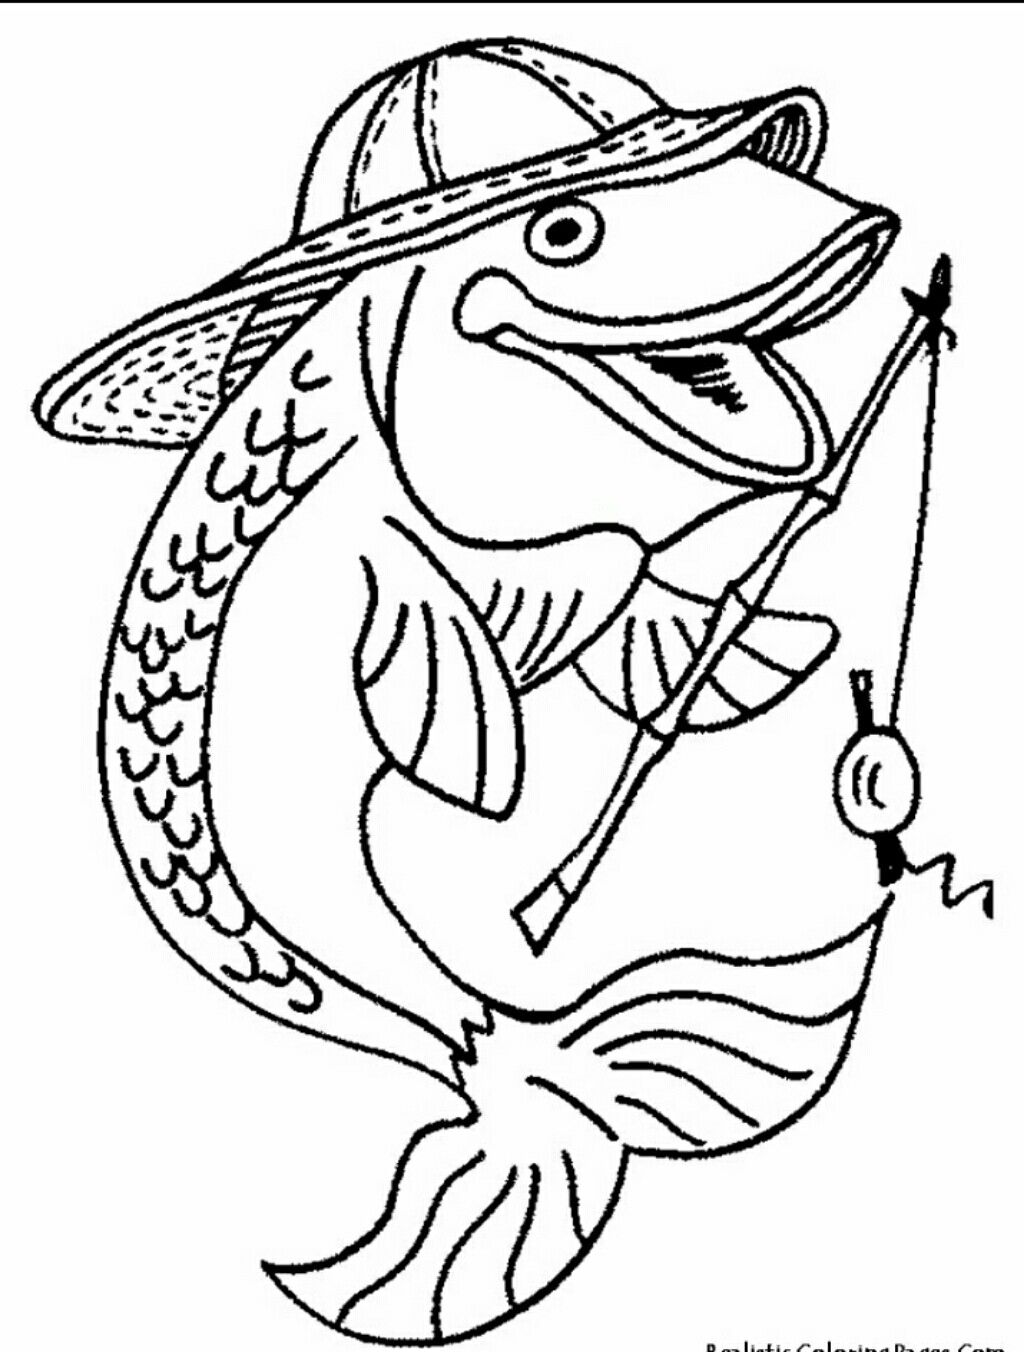 Pin By Coonassmom On *kk* Animals   Fish Coloring Page